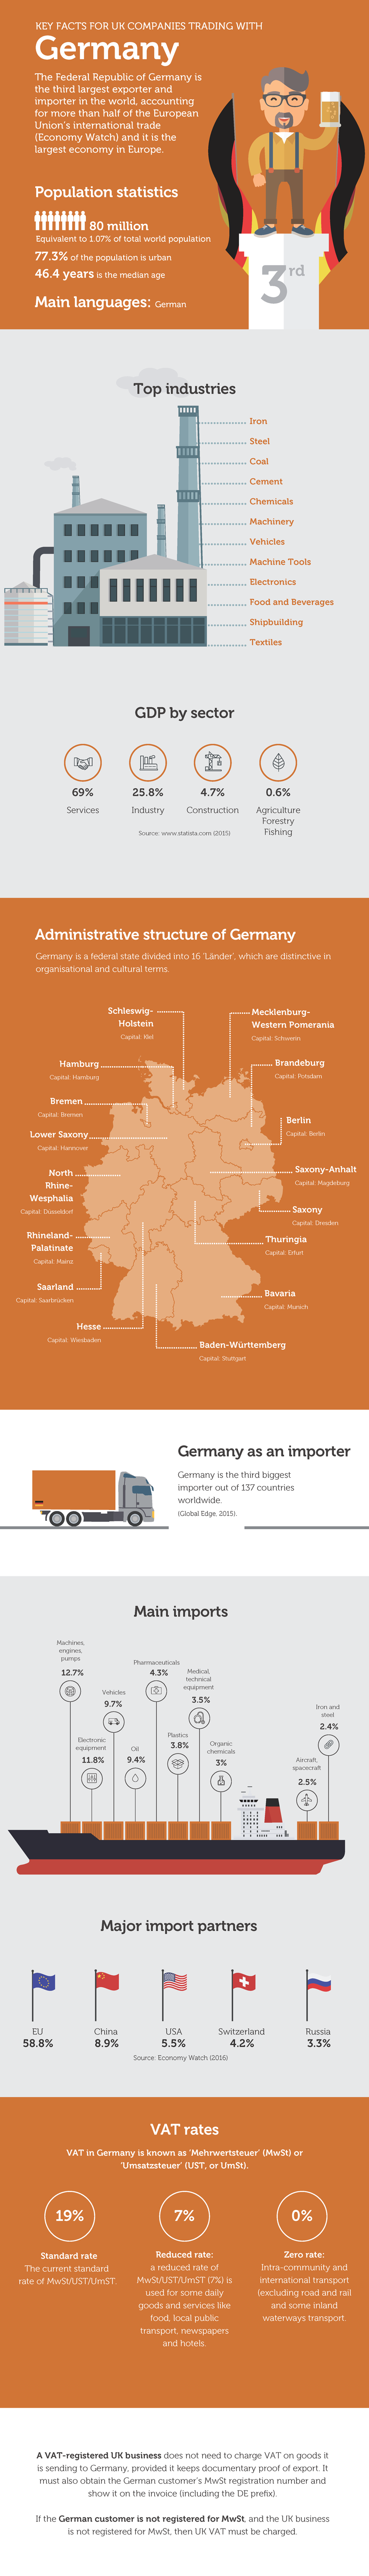 Key facts for UK businesses trading with Germany Infographic